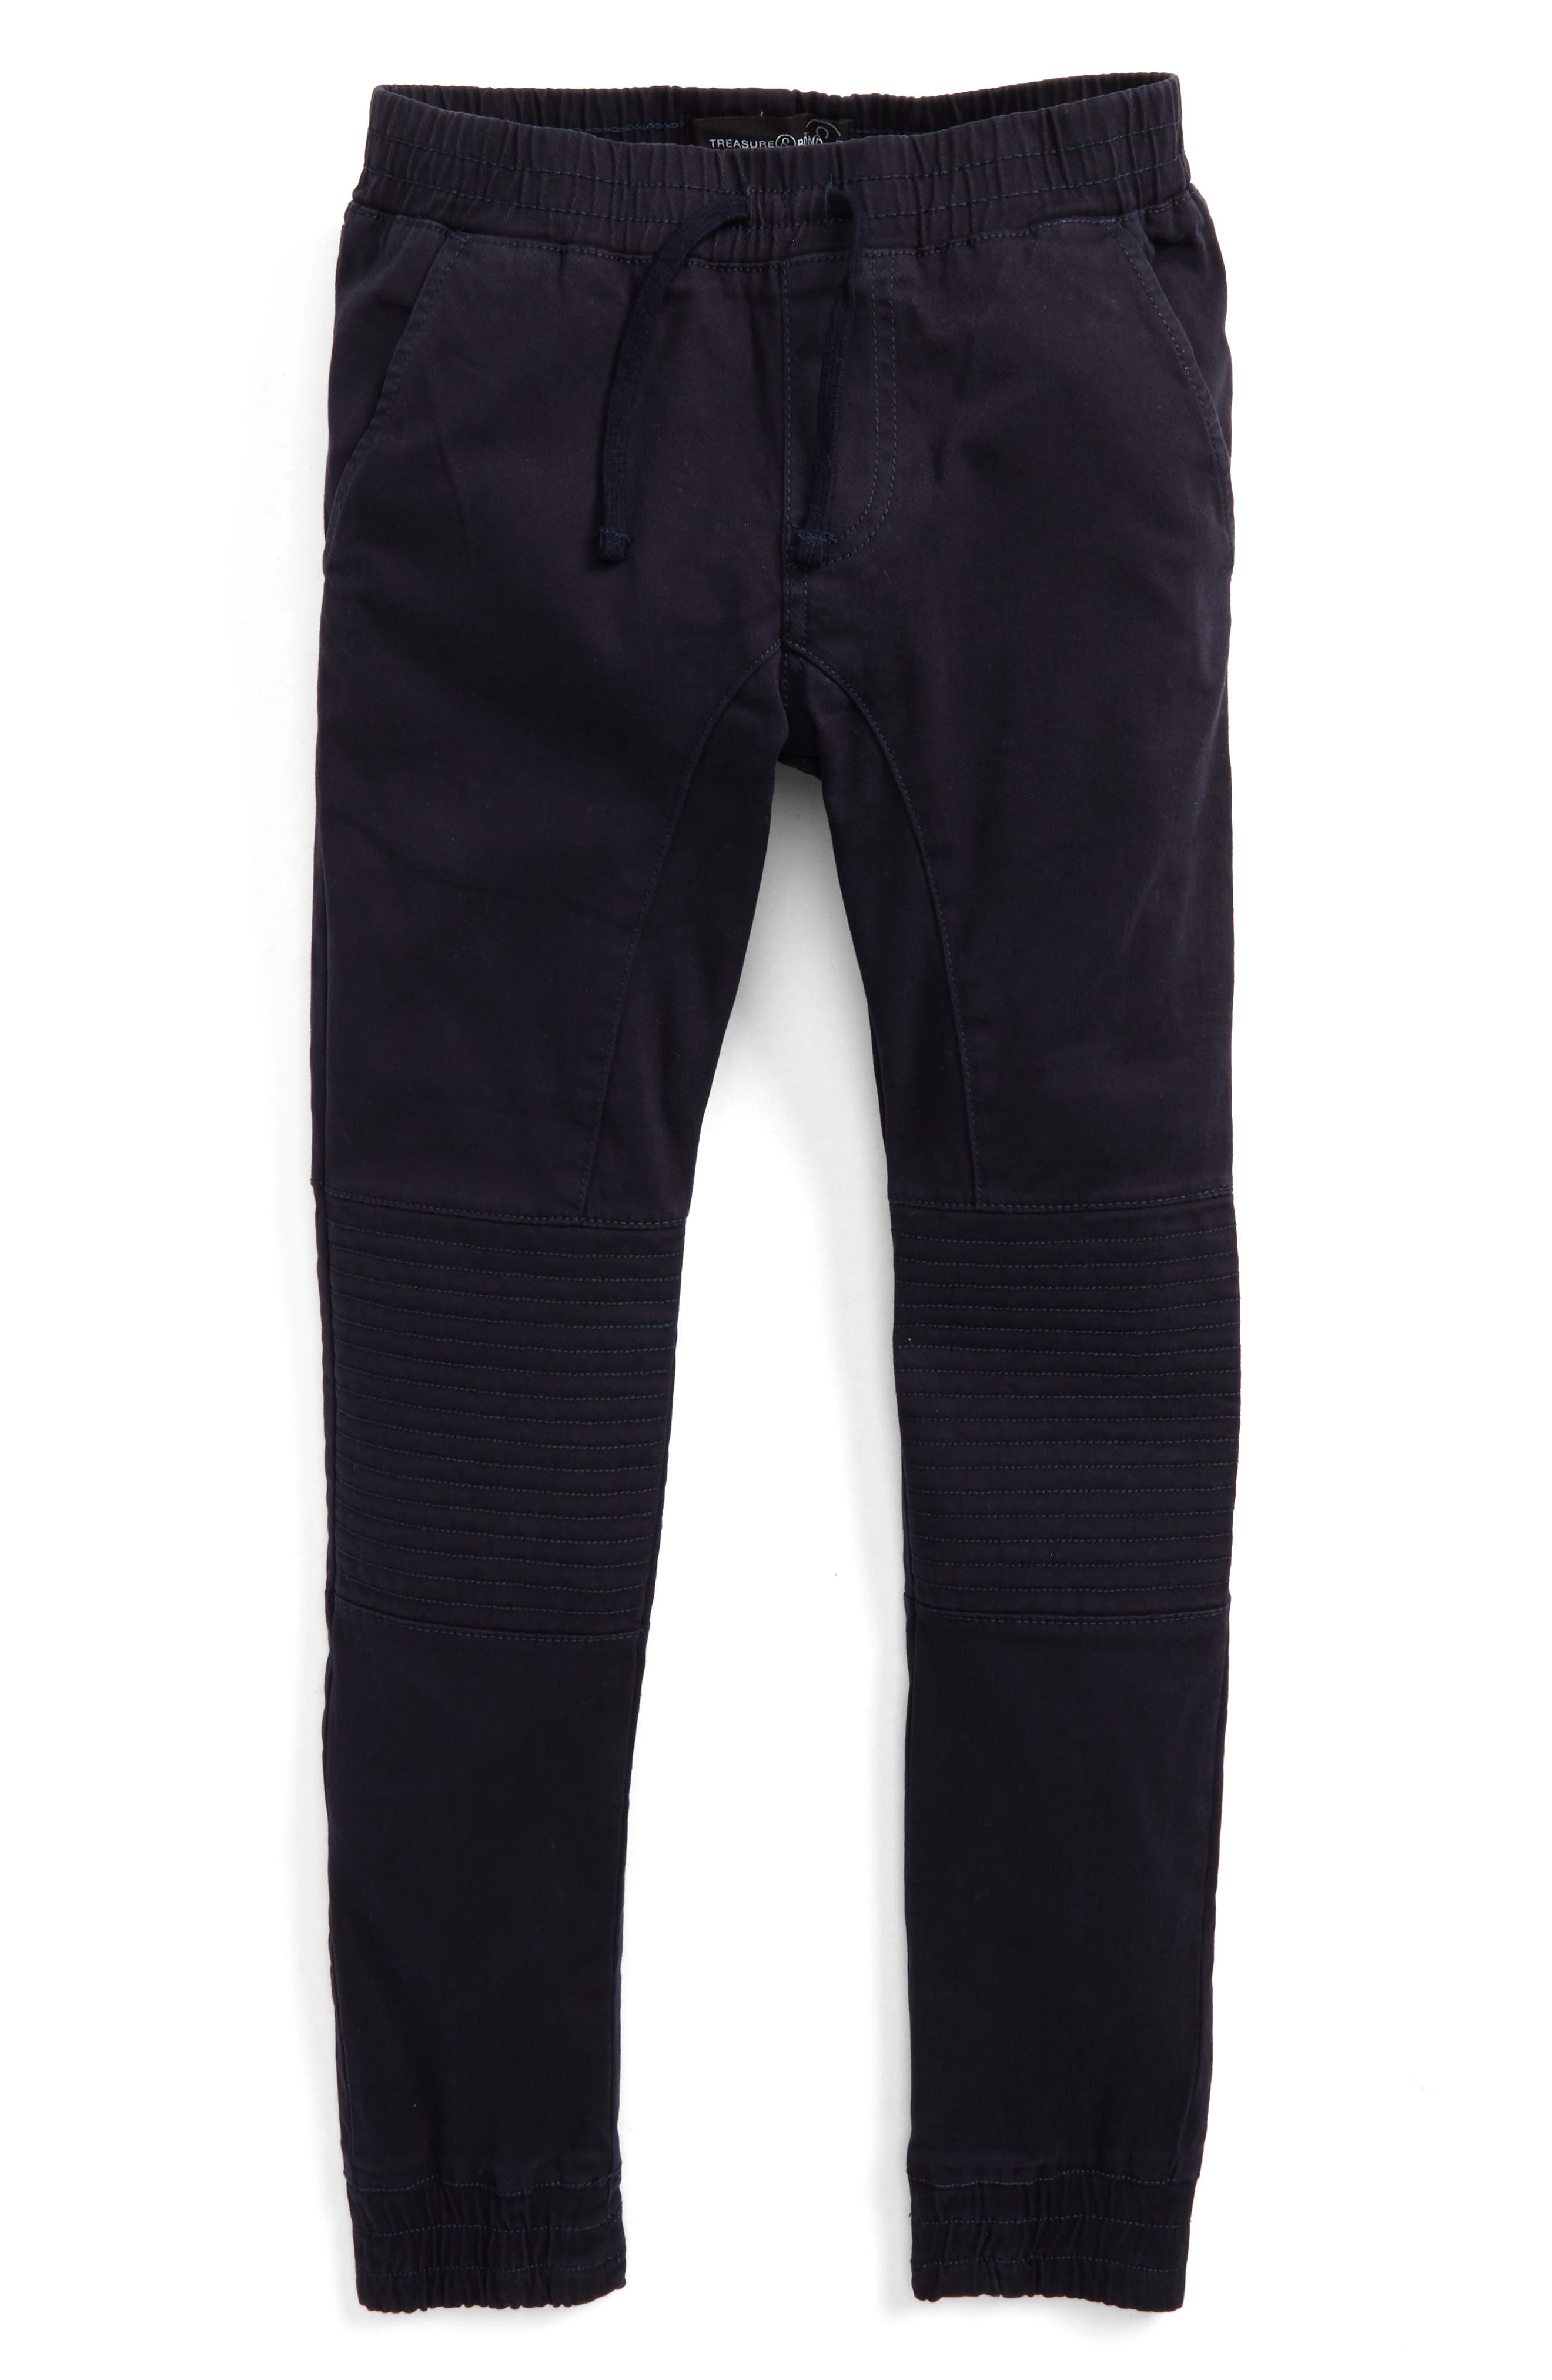 Moto Jogger Pants,                             Main thumbnail 1, color,                             Navy Night